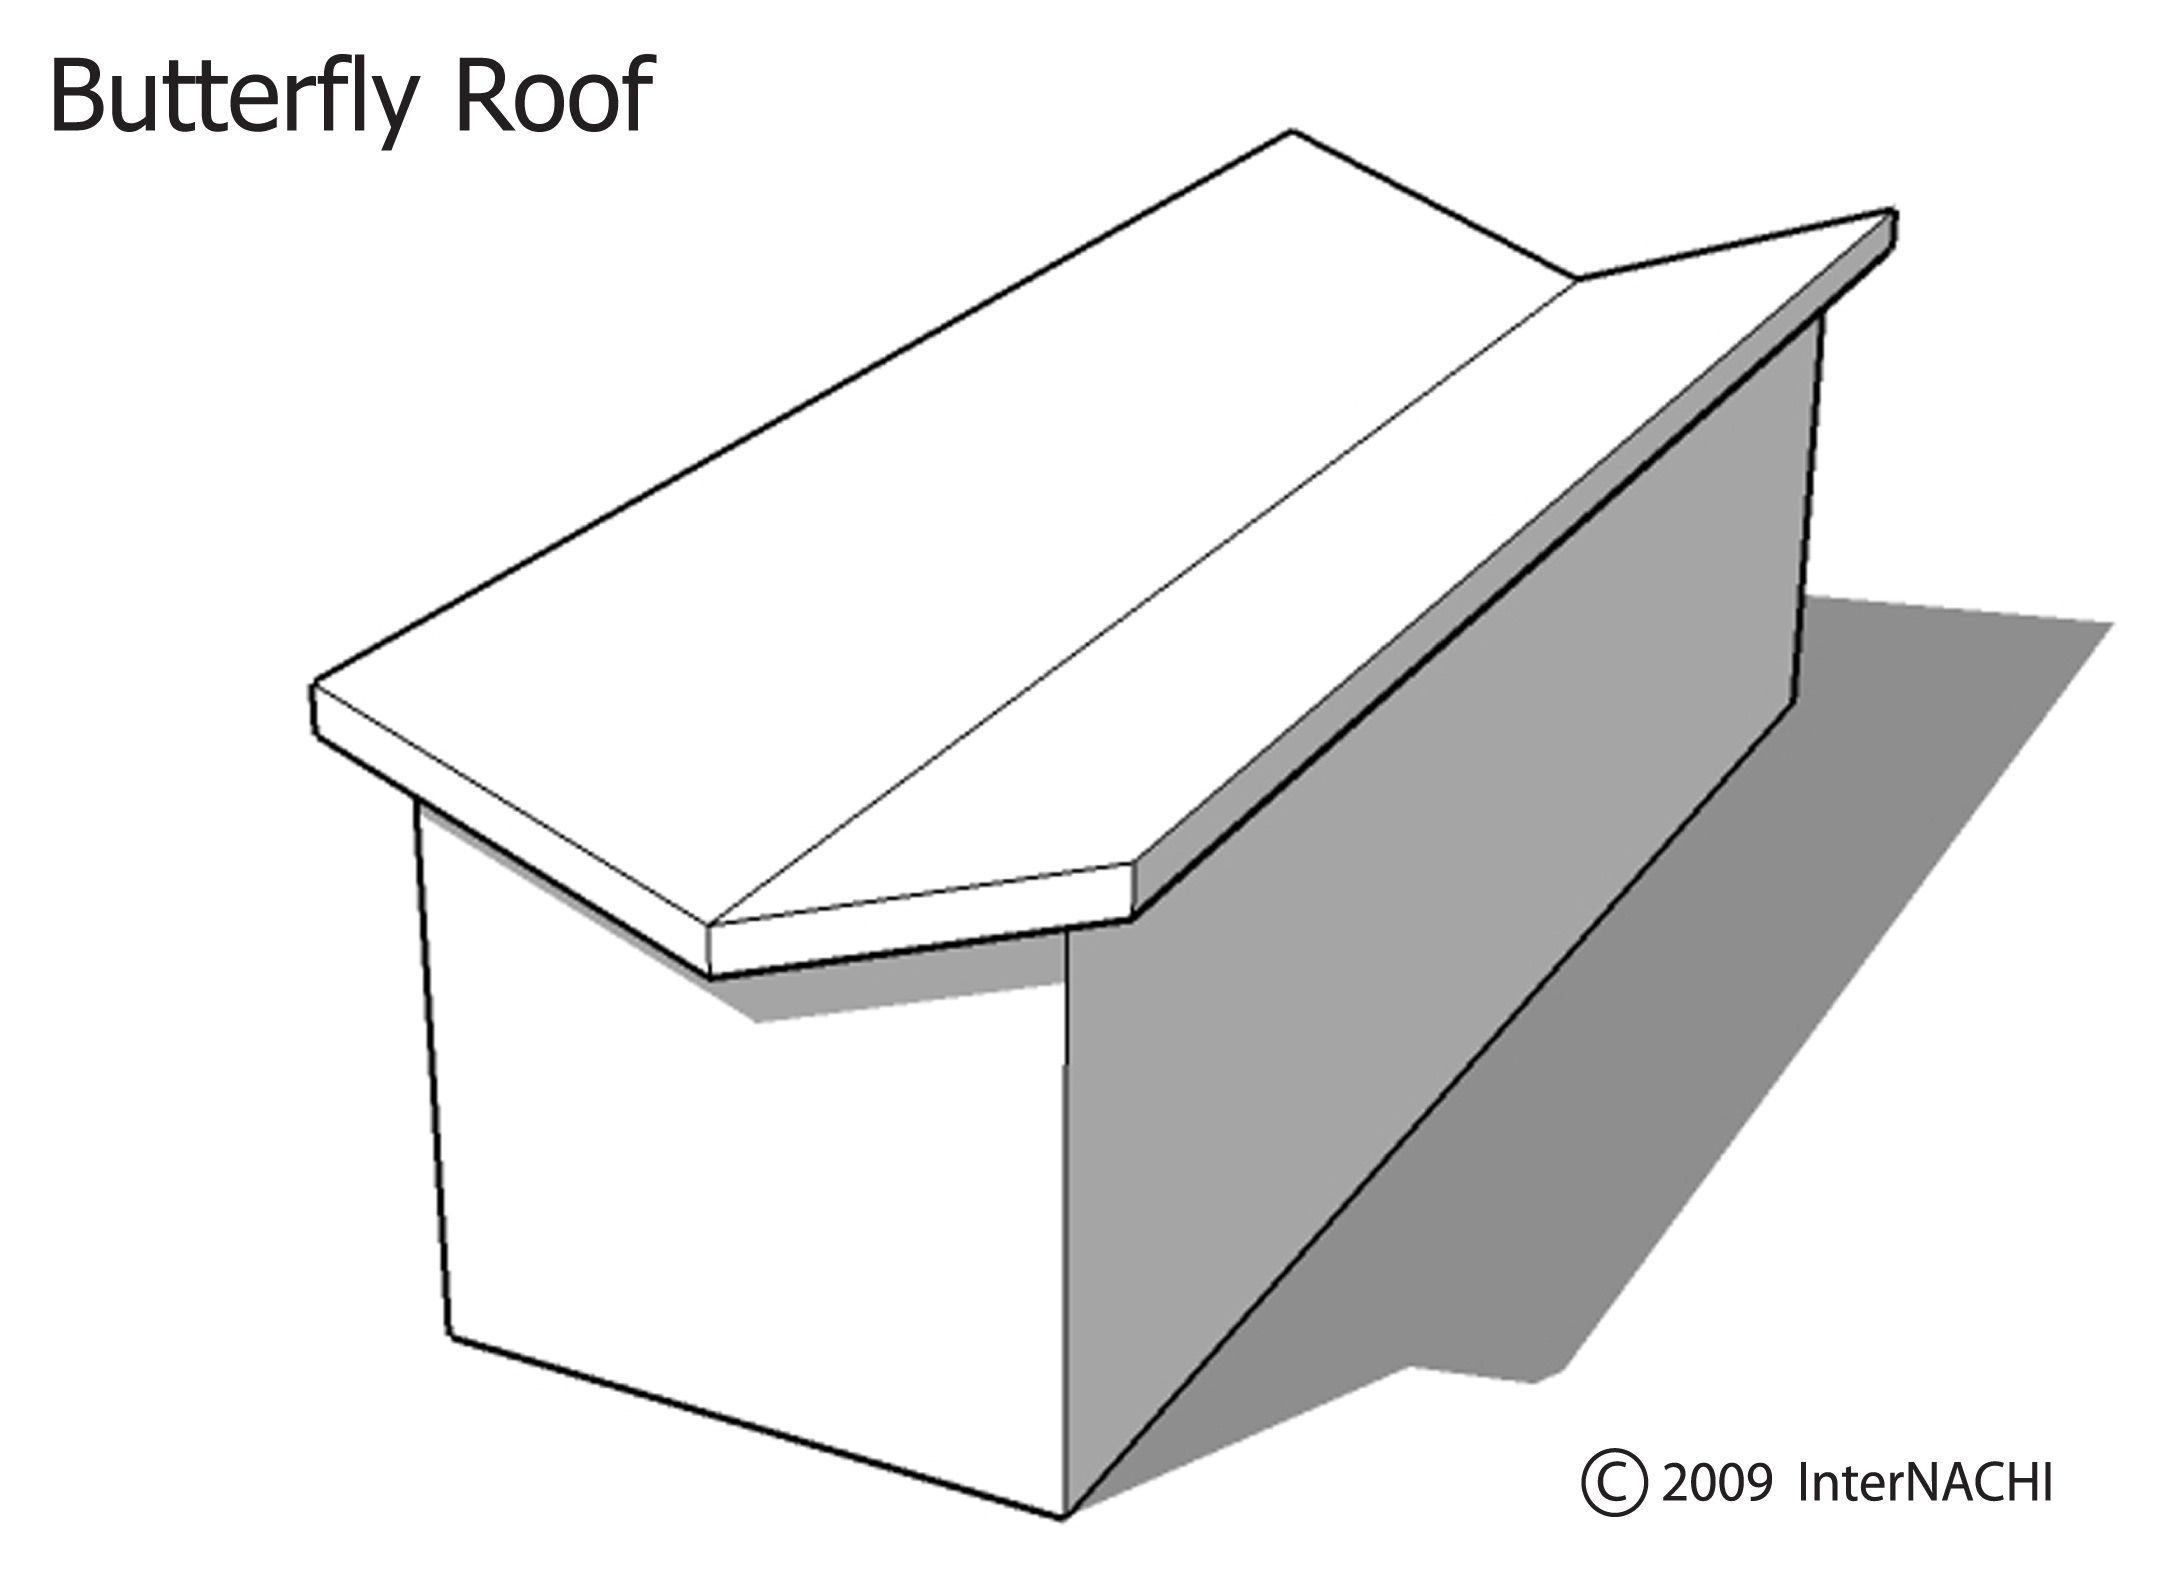 Butterfly roof.